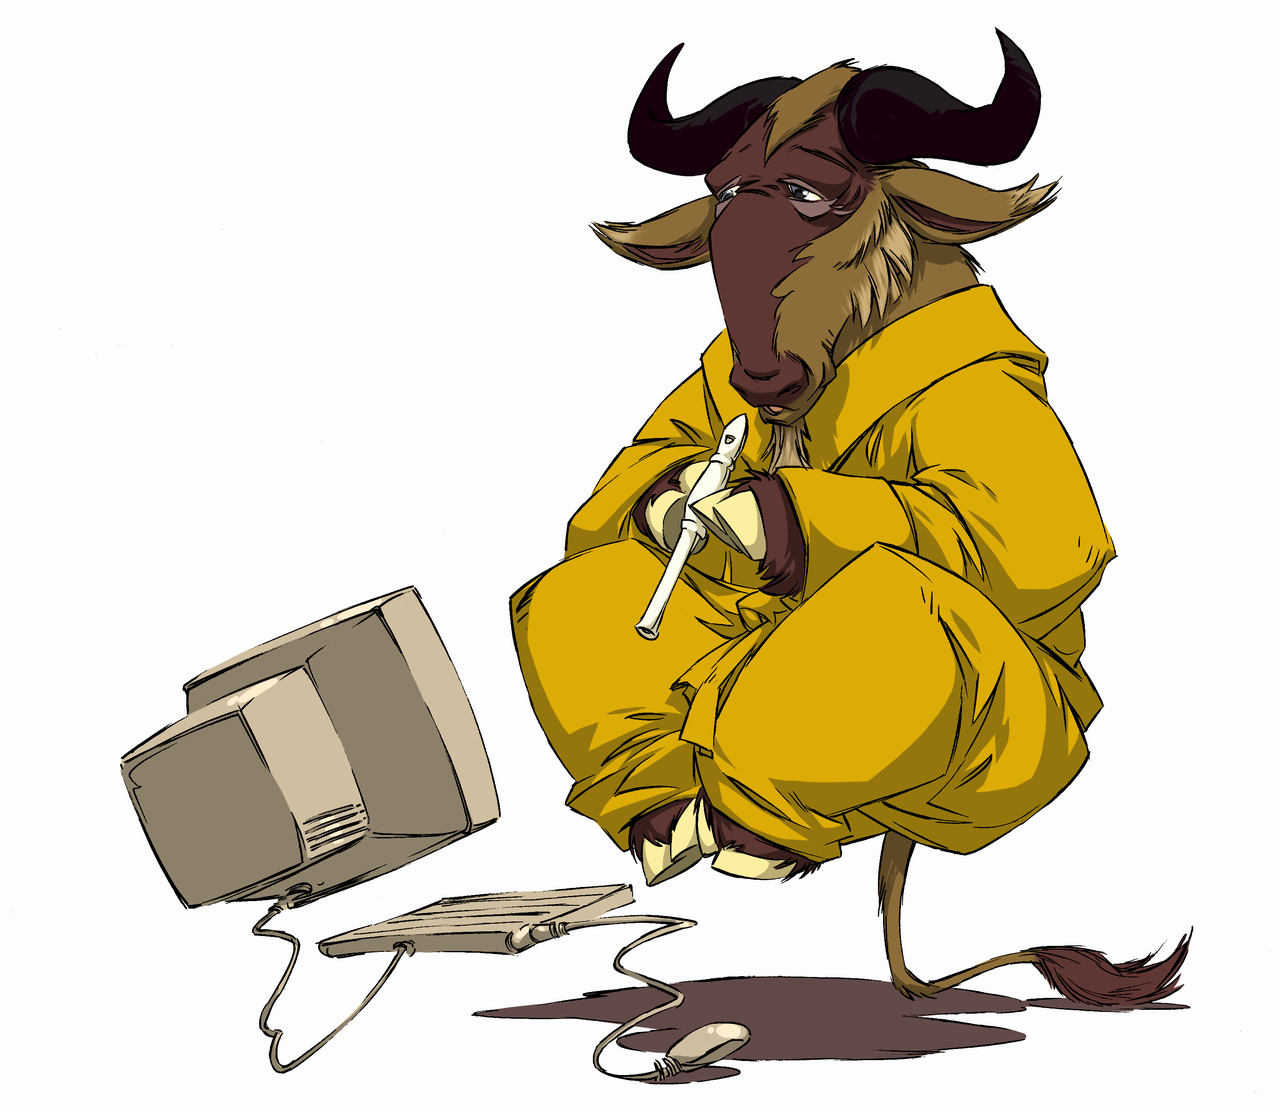 GNU Project - Levitating, Meditating, Flute-playing Gnu - Free ...